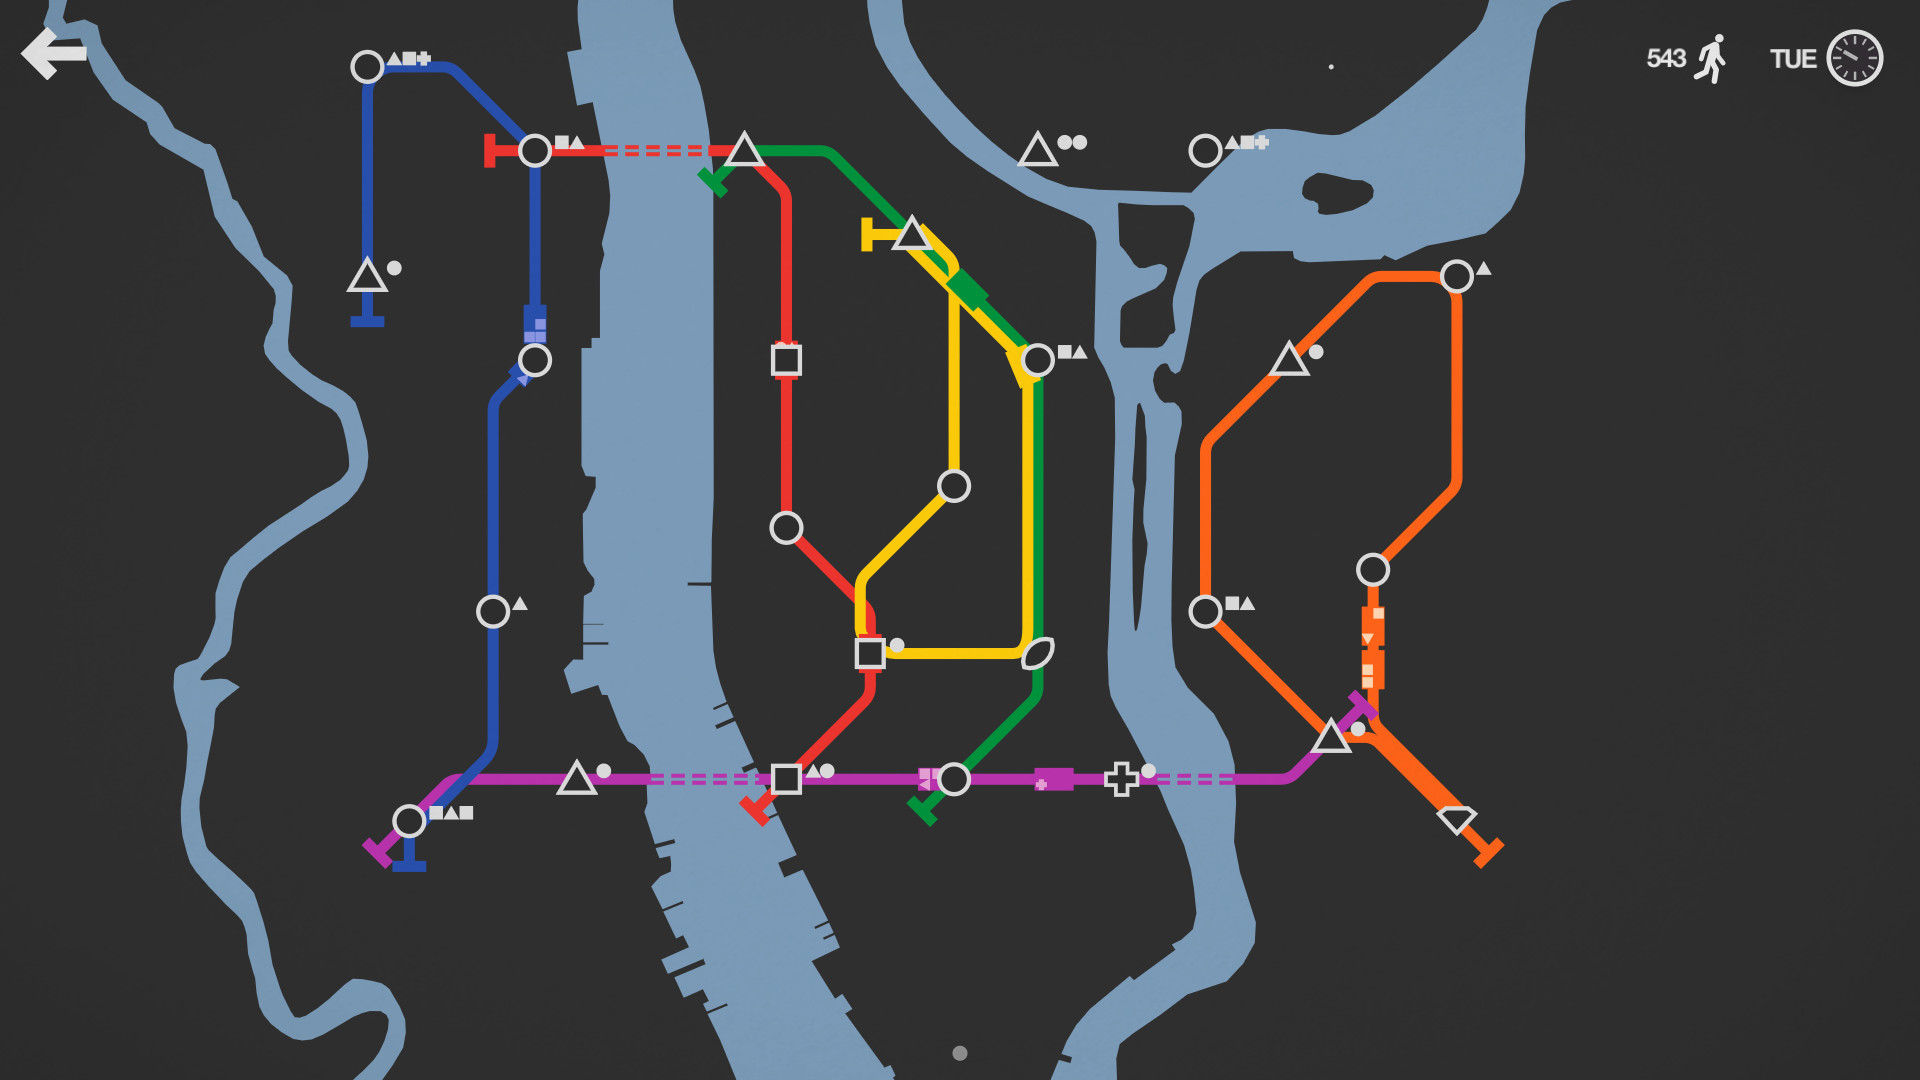 Subway simulation puzzler Mini Metro is headed to Nintendo Switch in 2018